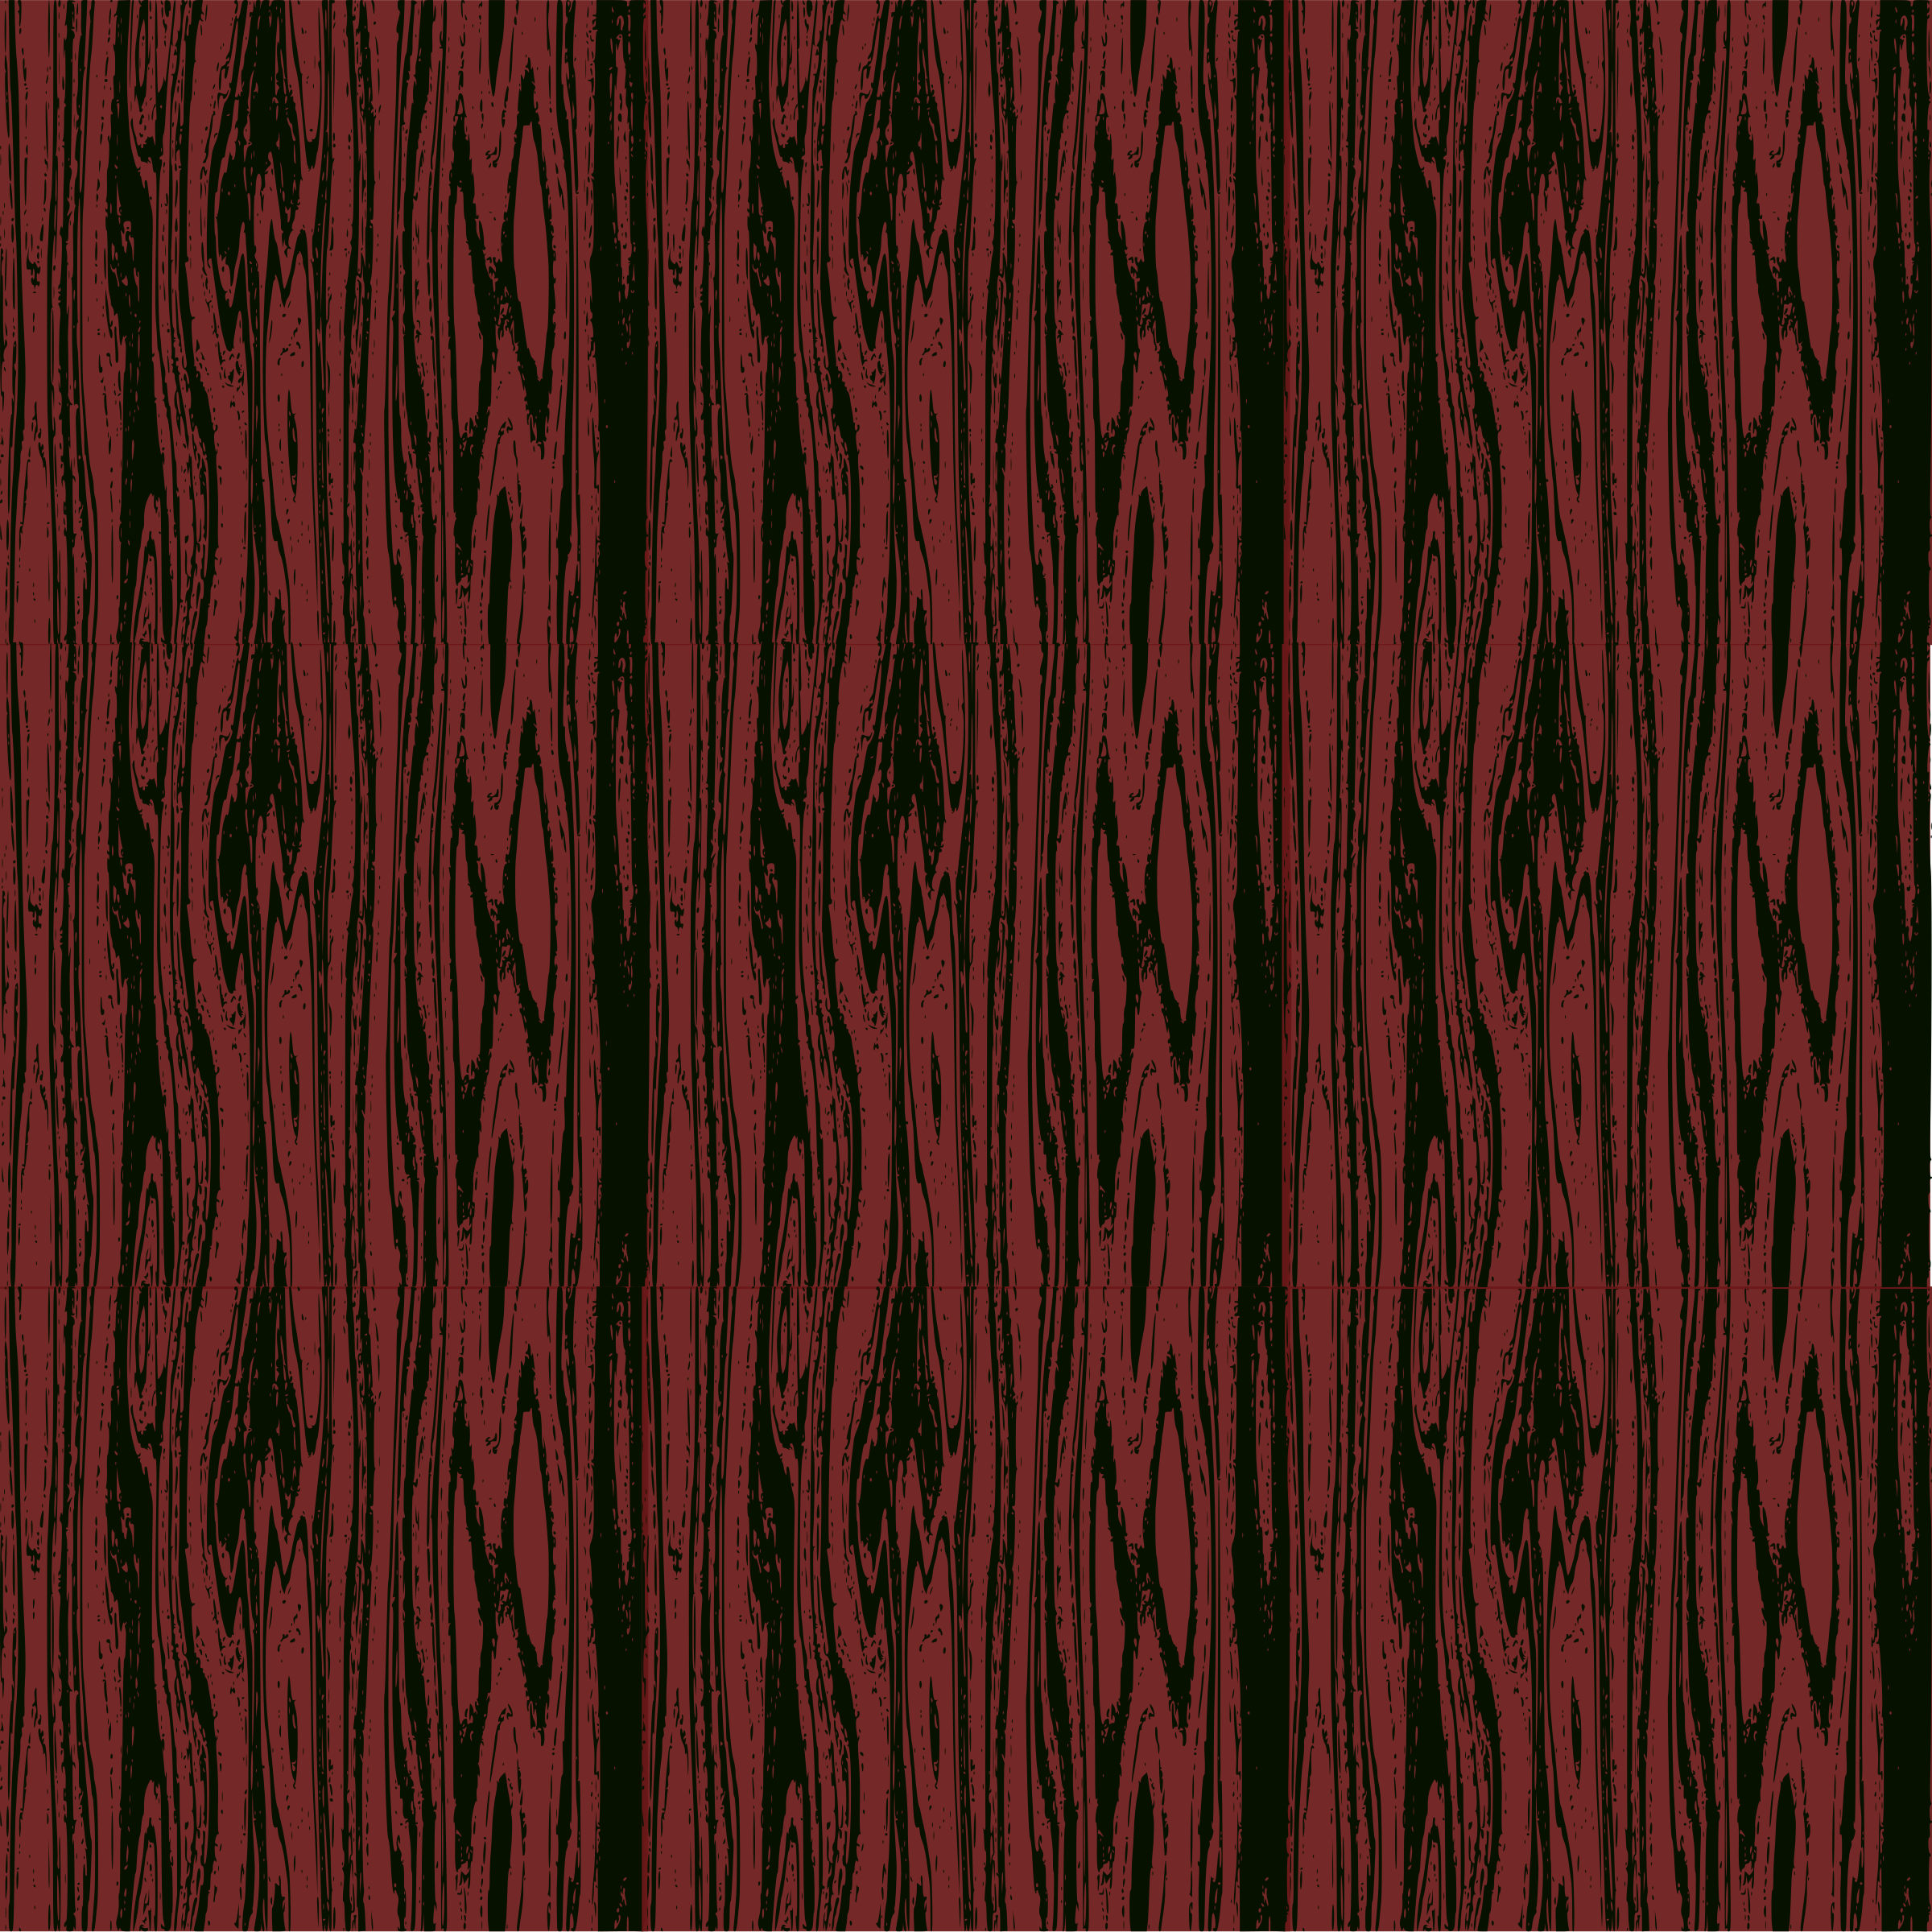 Grain texture png. Clipart woody seamless pattern